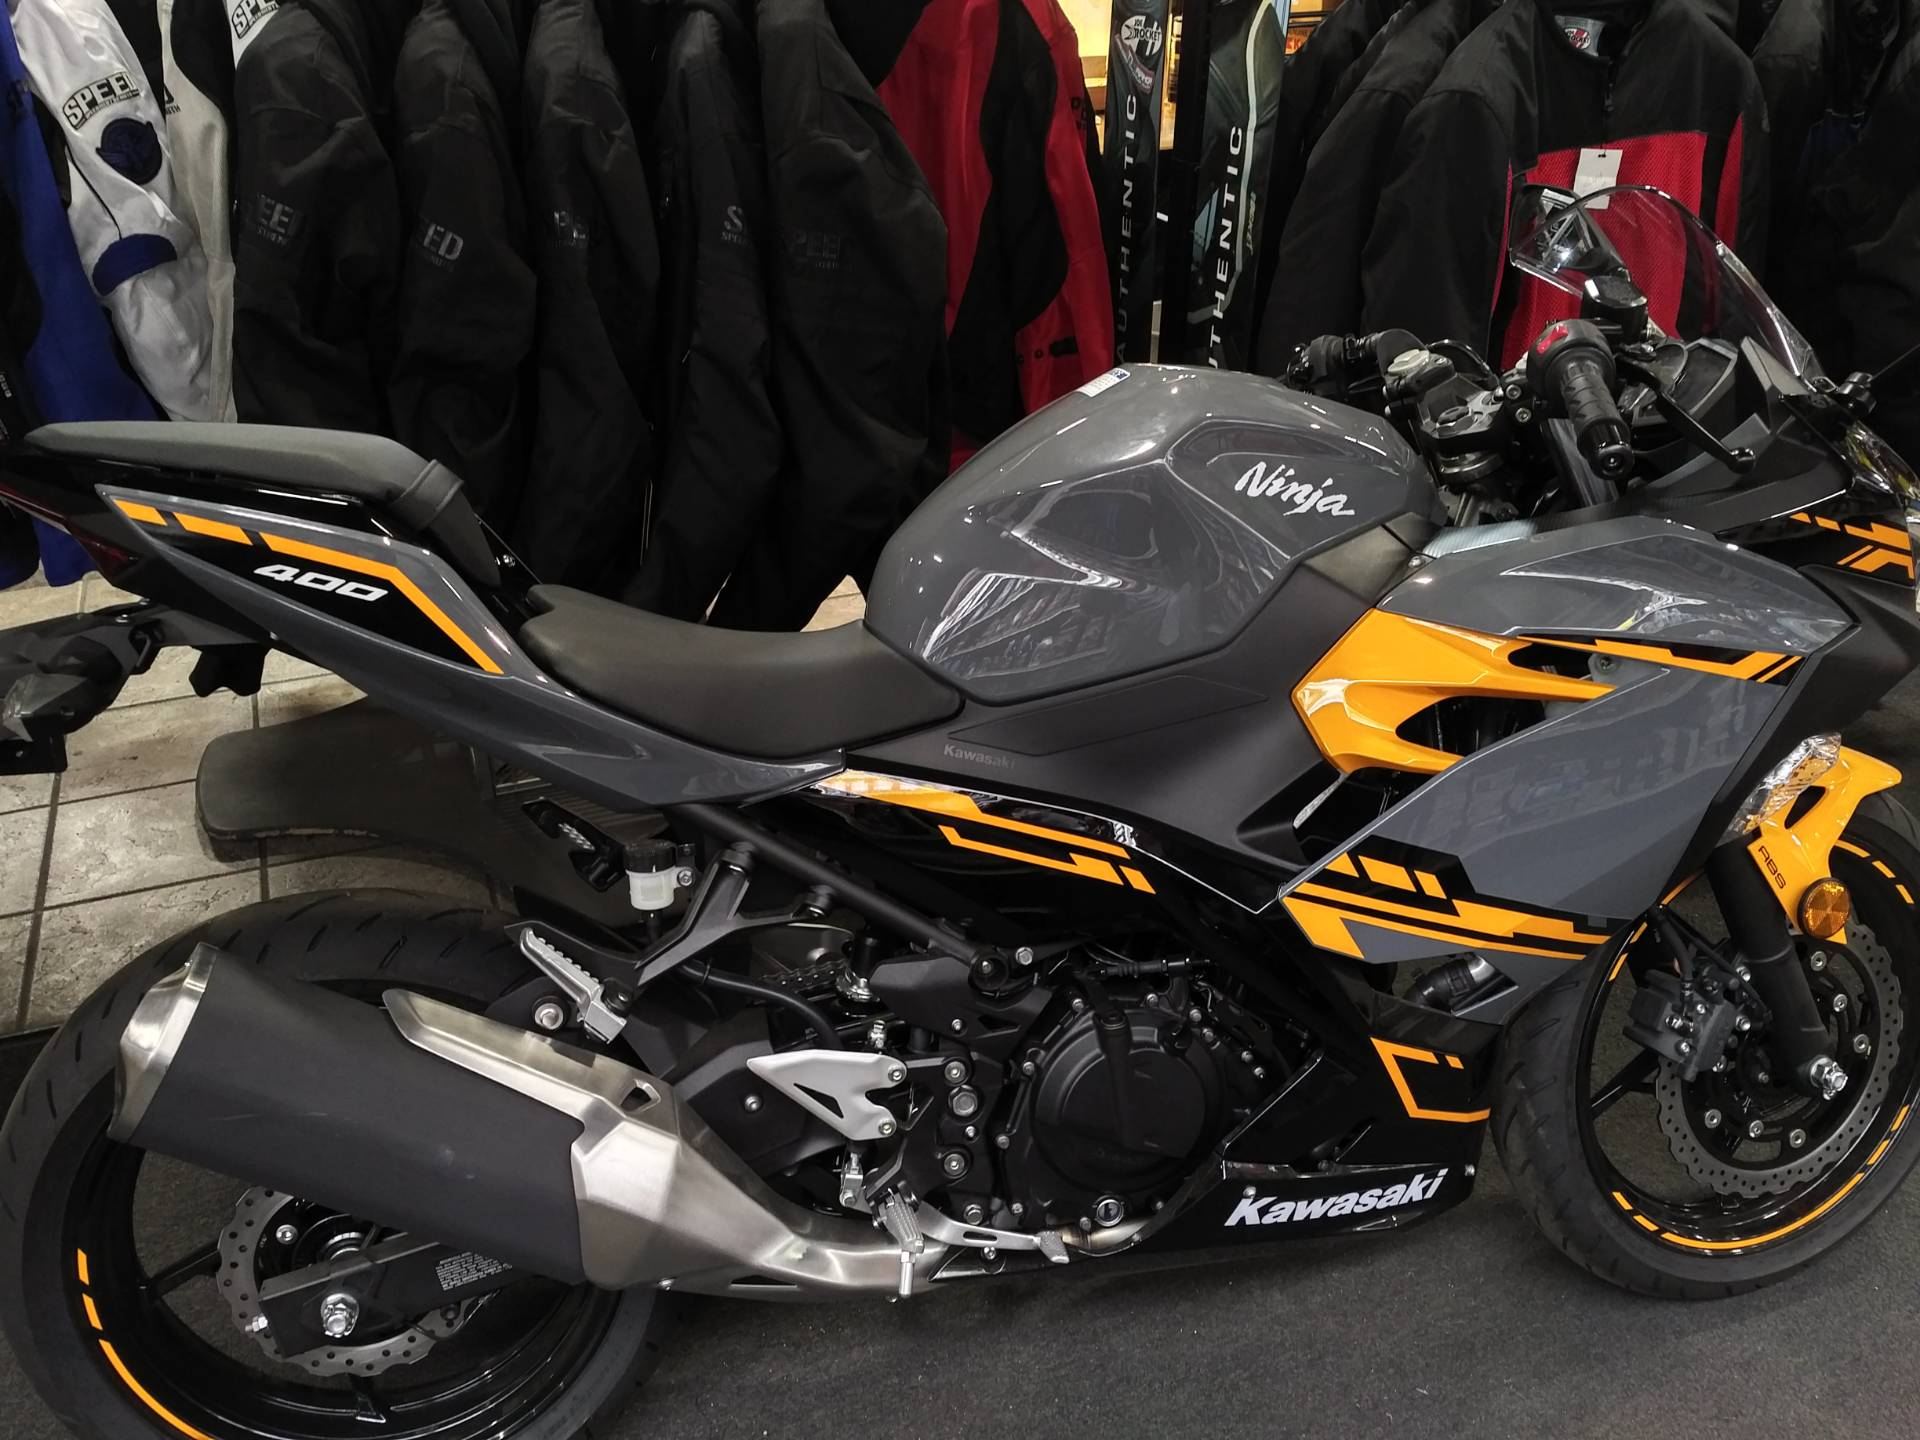 New 2018 Kawasaki Ninja 400 Abs Powersports In Salinas Ca Stock